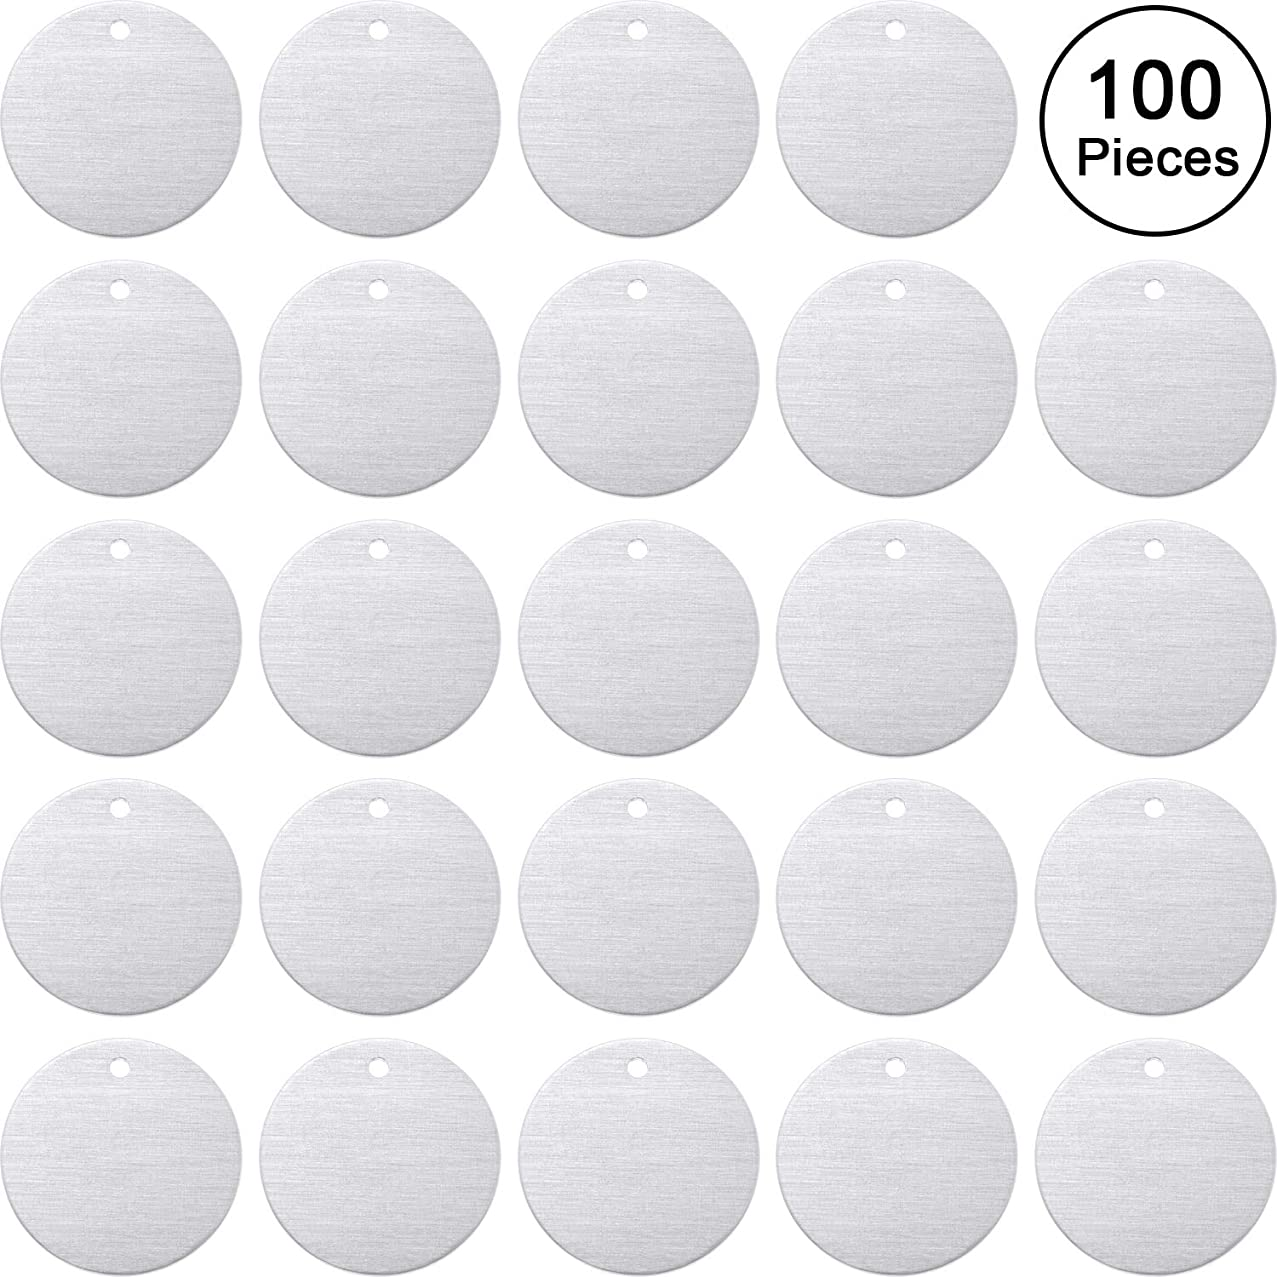 Stamping Blank Tags, 1 Inch Round with Hole Aluminum 0.06 Inch Thickness Blanks Tags (50)